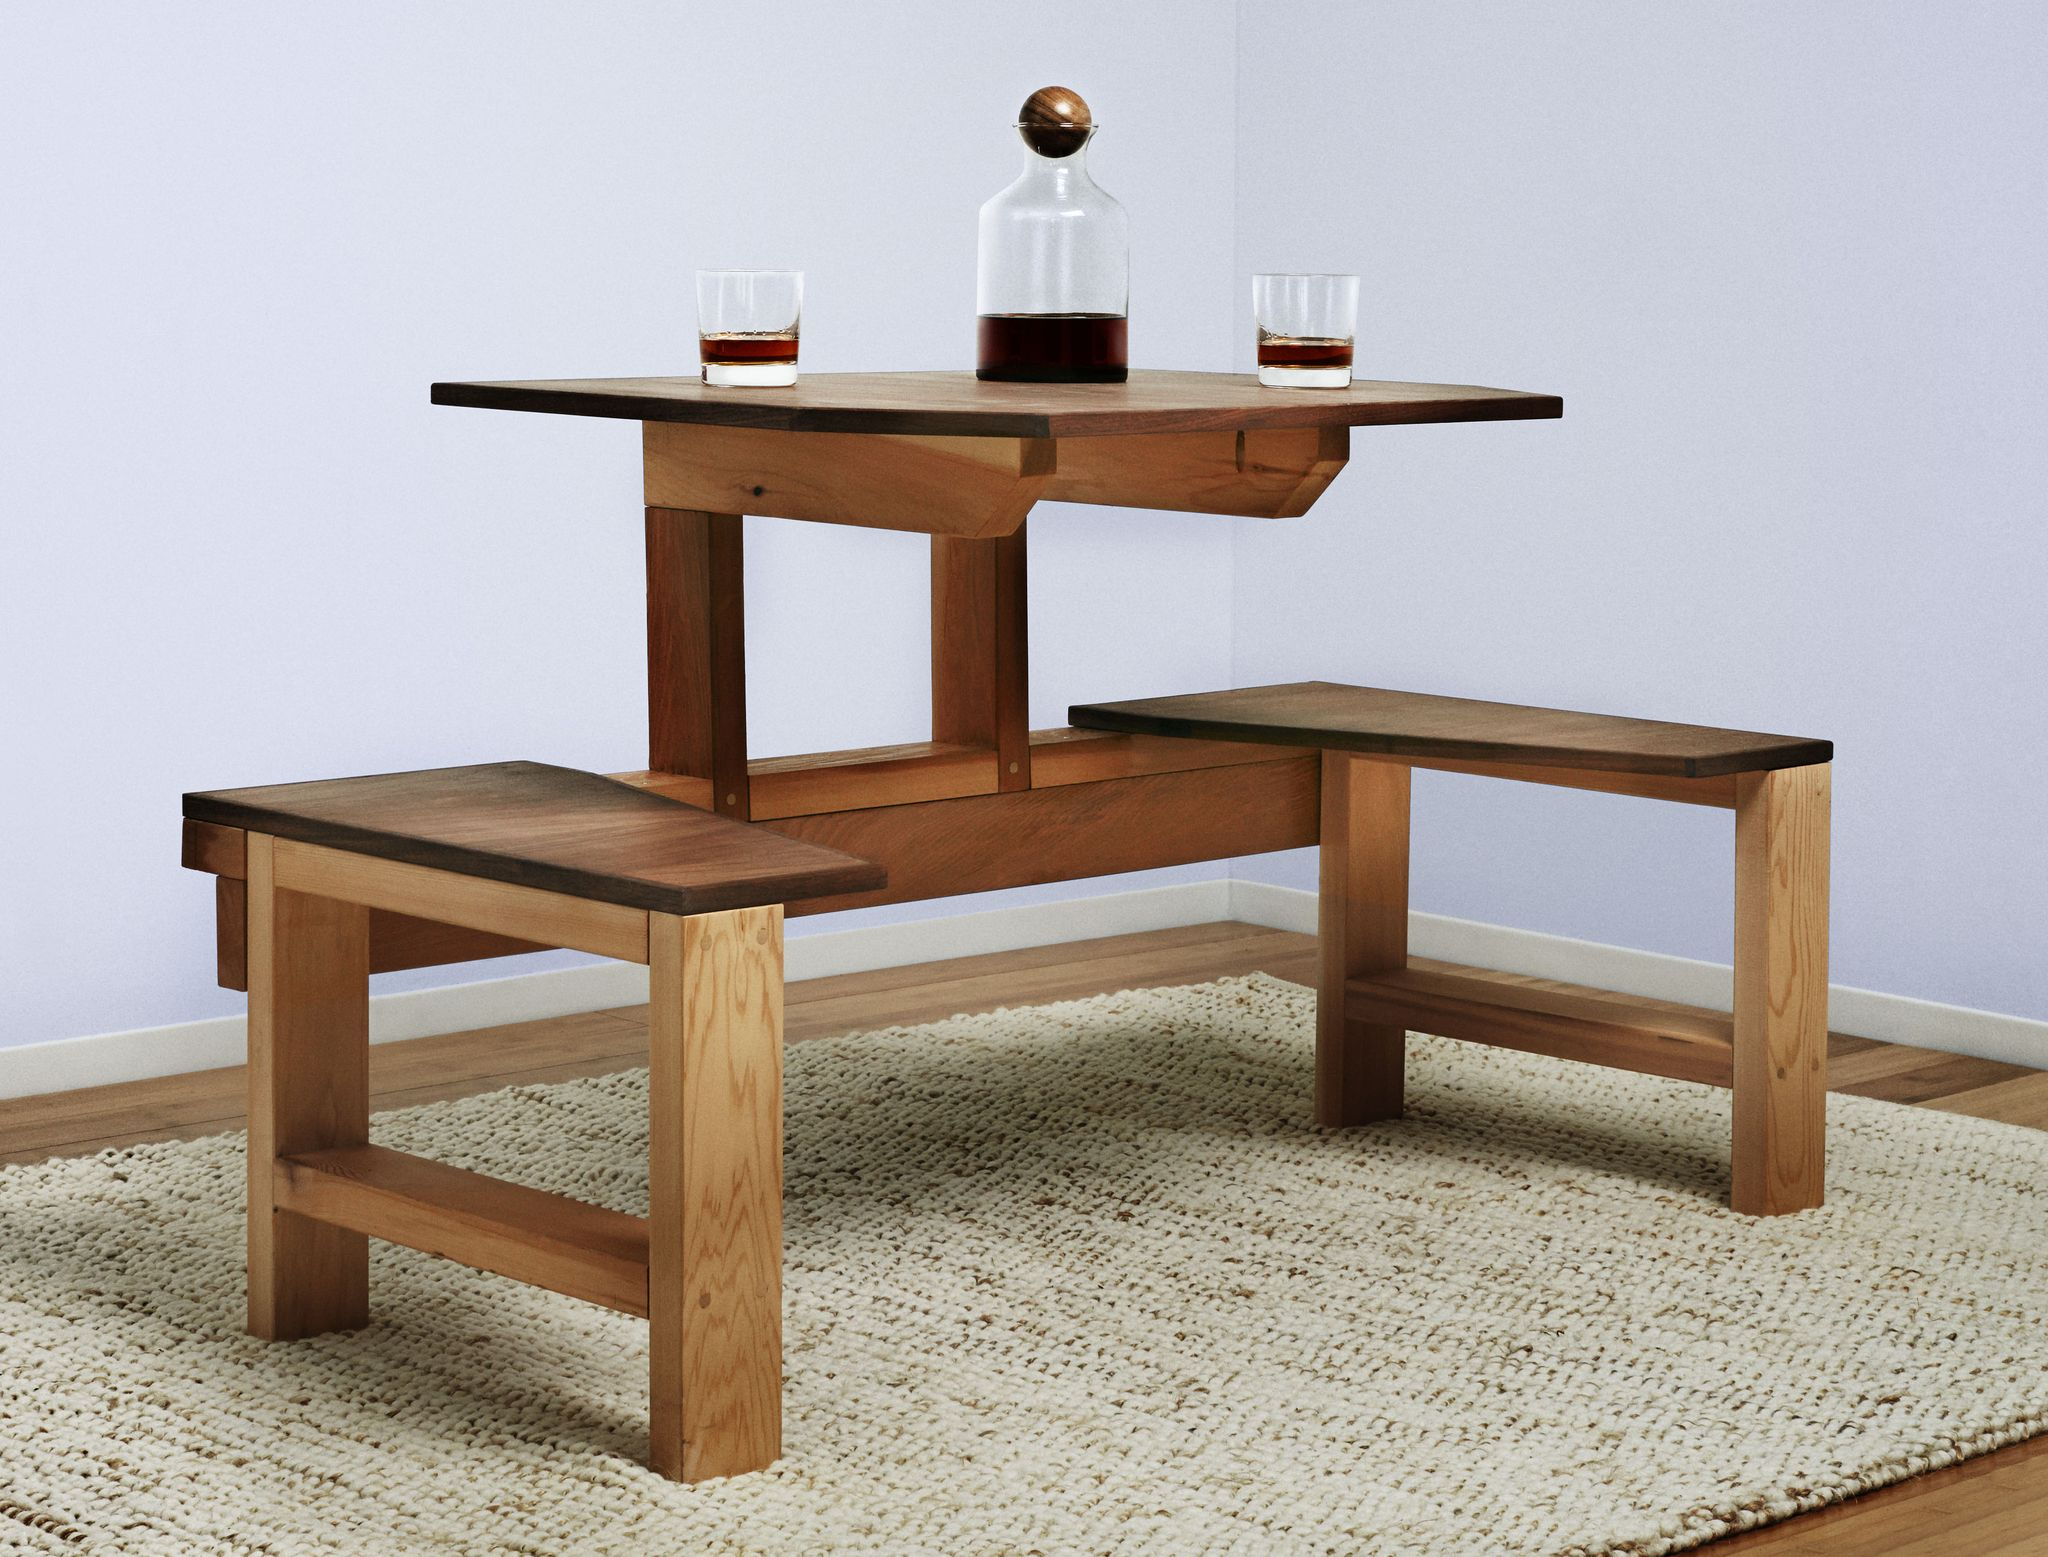 This Table for Two Resurrects a Pop Mech Classic